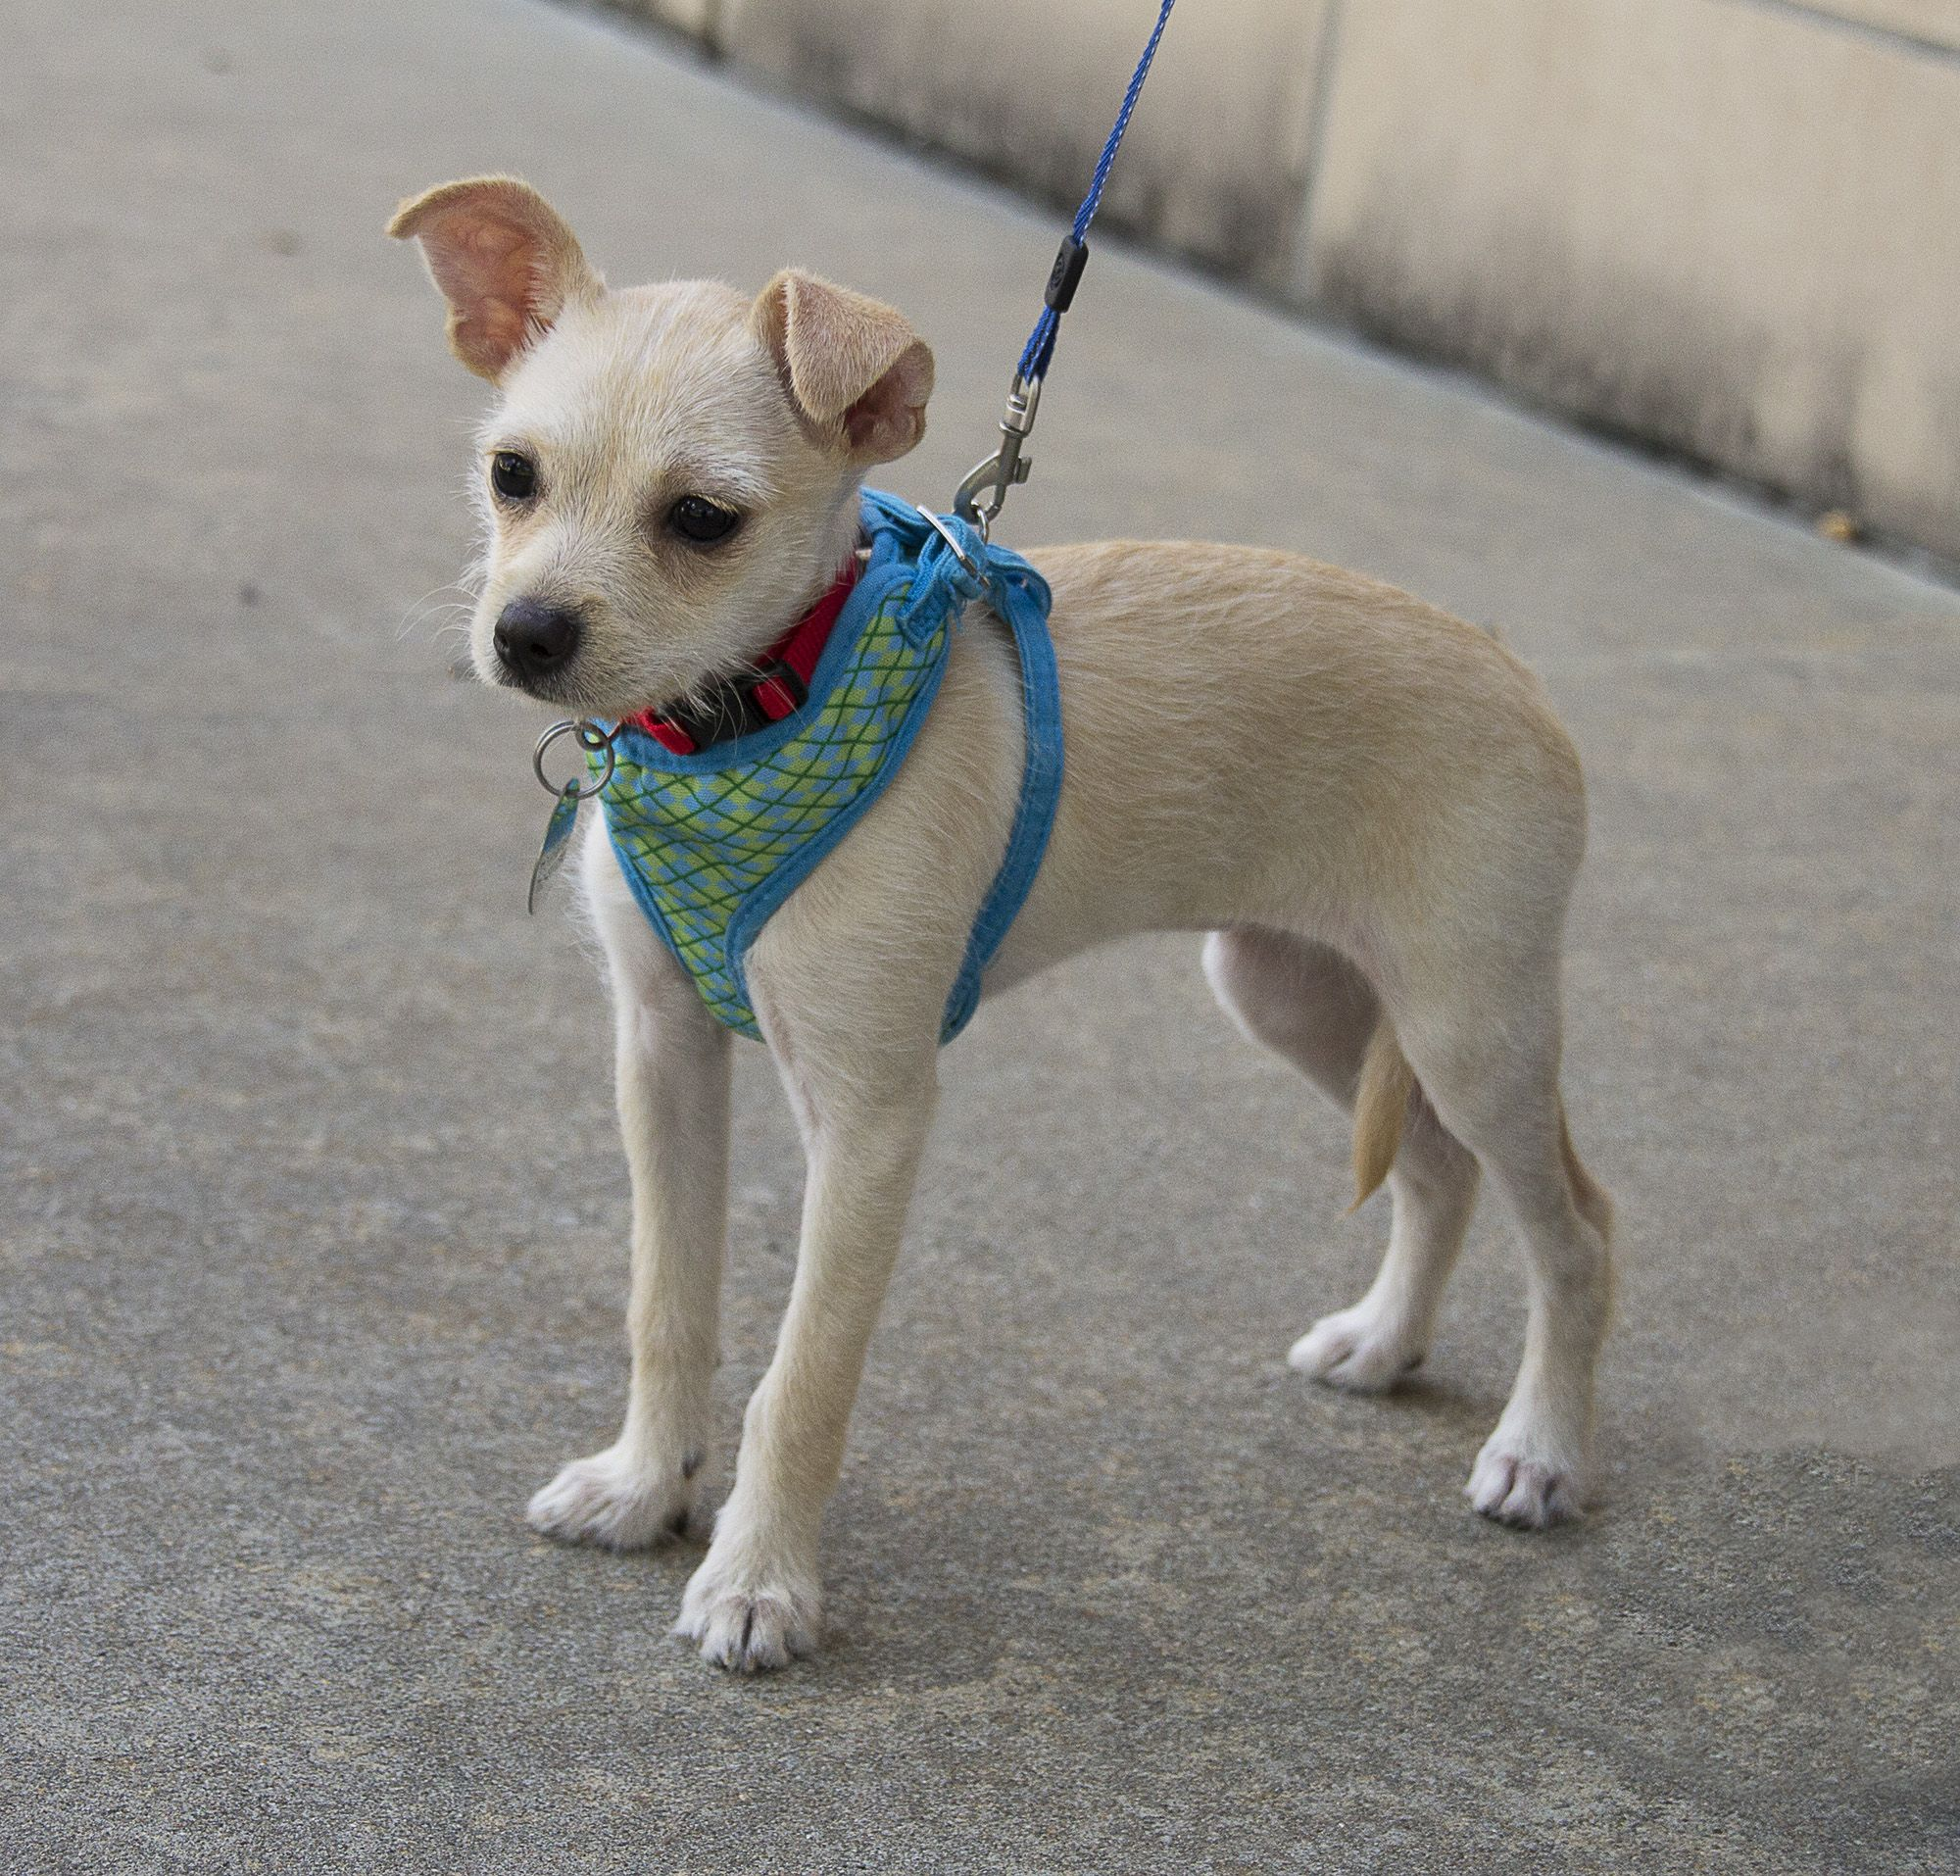 Jack Chi dog for Adoption in Houston, TX. ADN555629 on